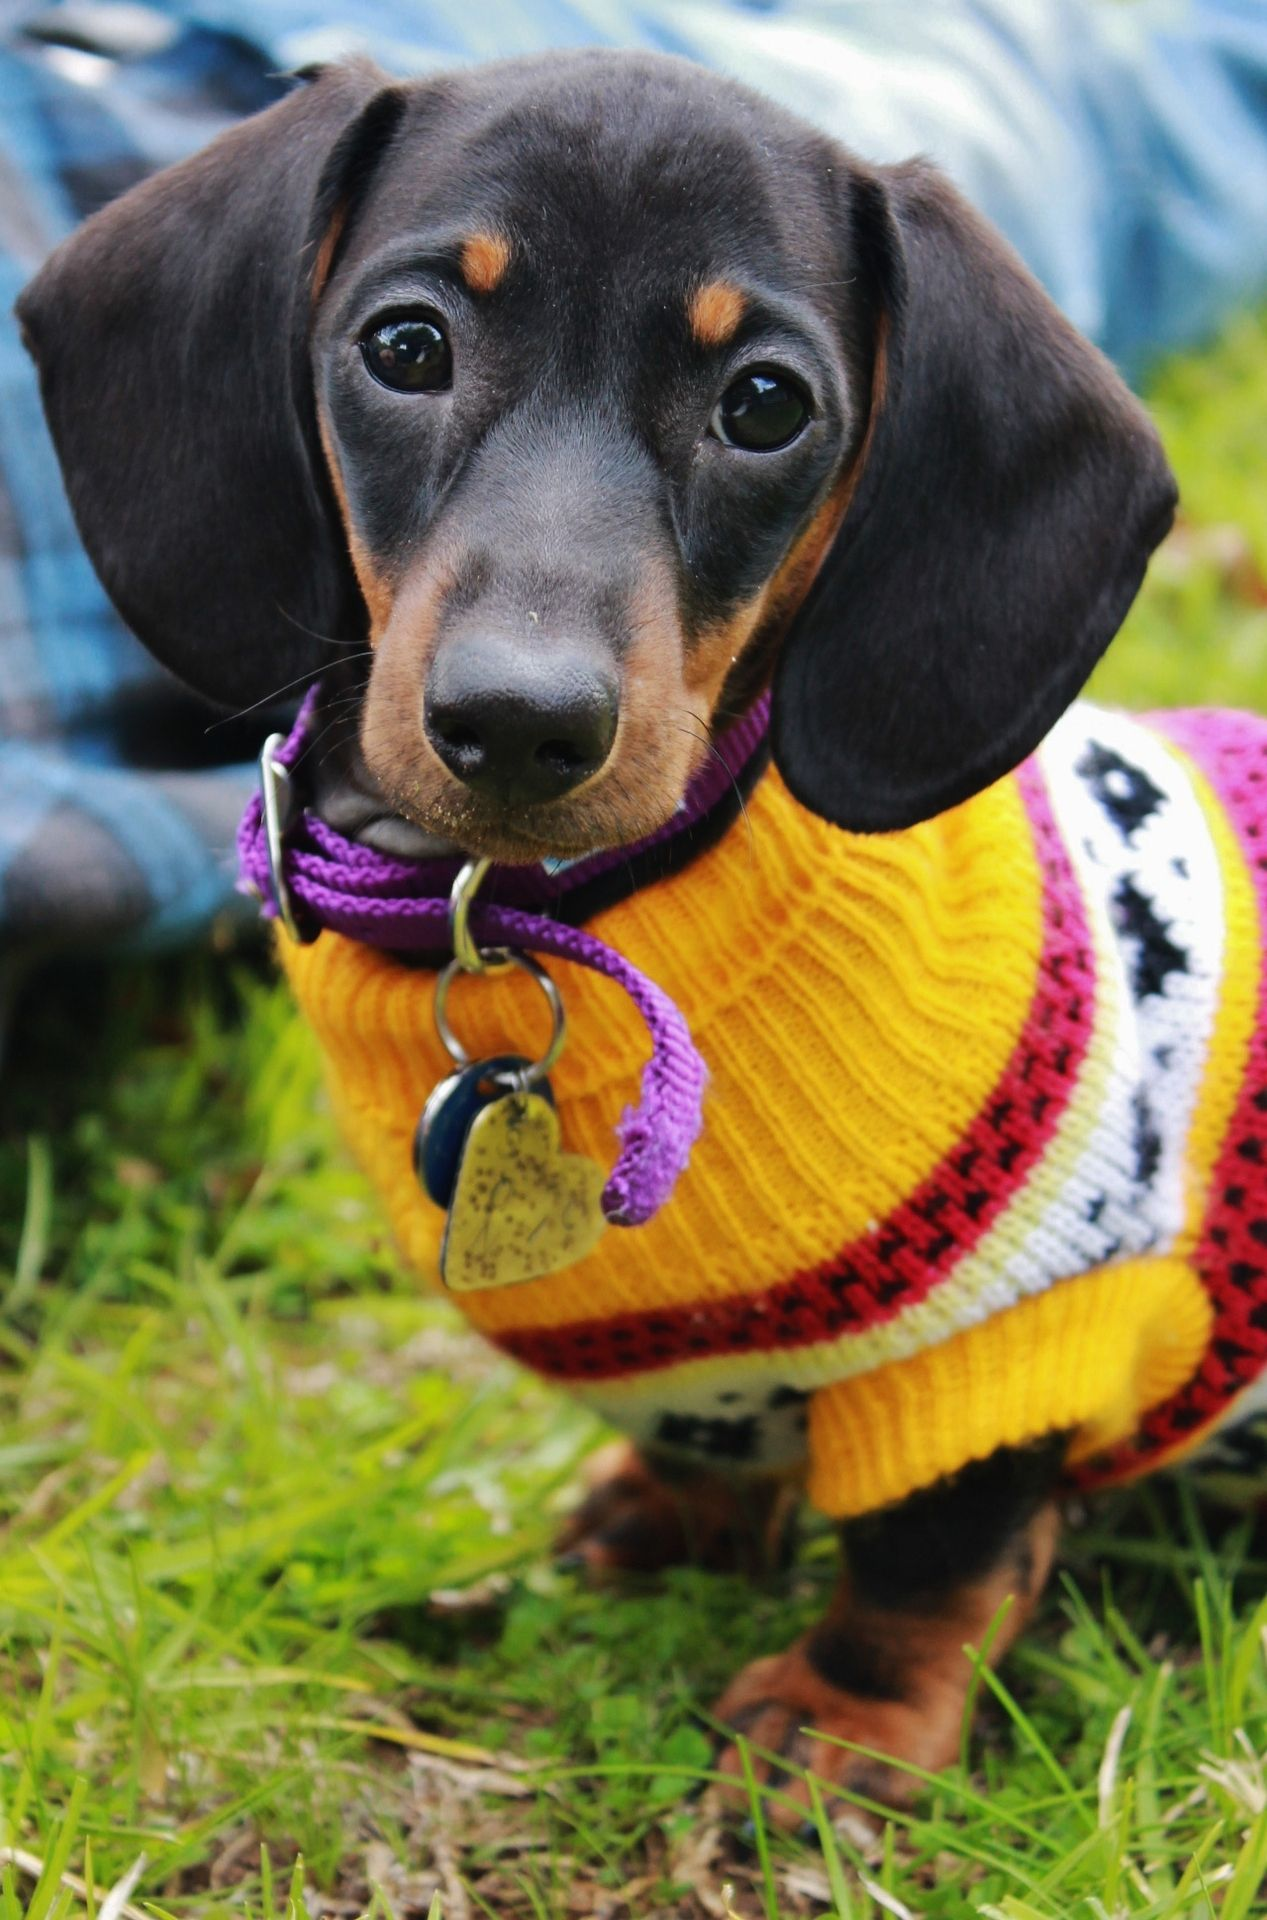 25 Dogs Bundled Up For Winter Weenie Dogs Dogs Dachshund